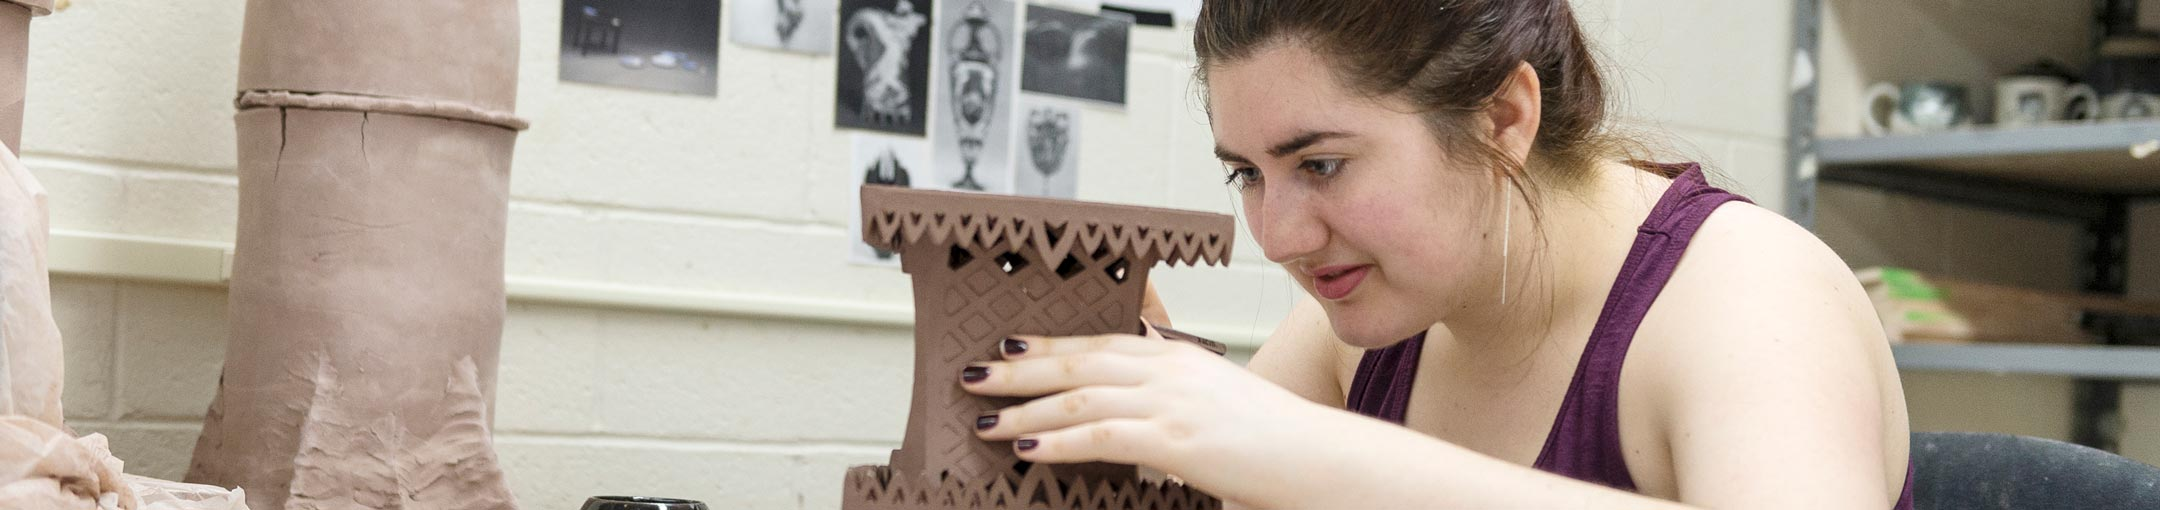 Student creating intricate lattice in ceramic sculpture.